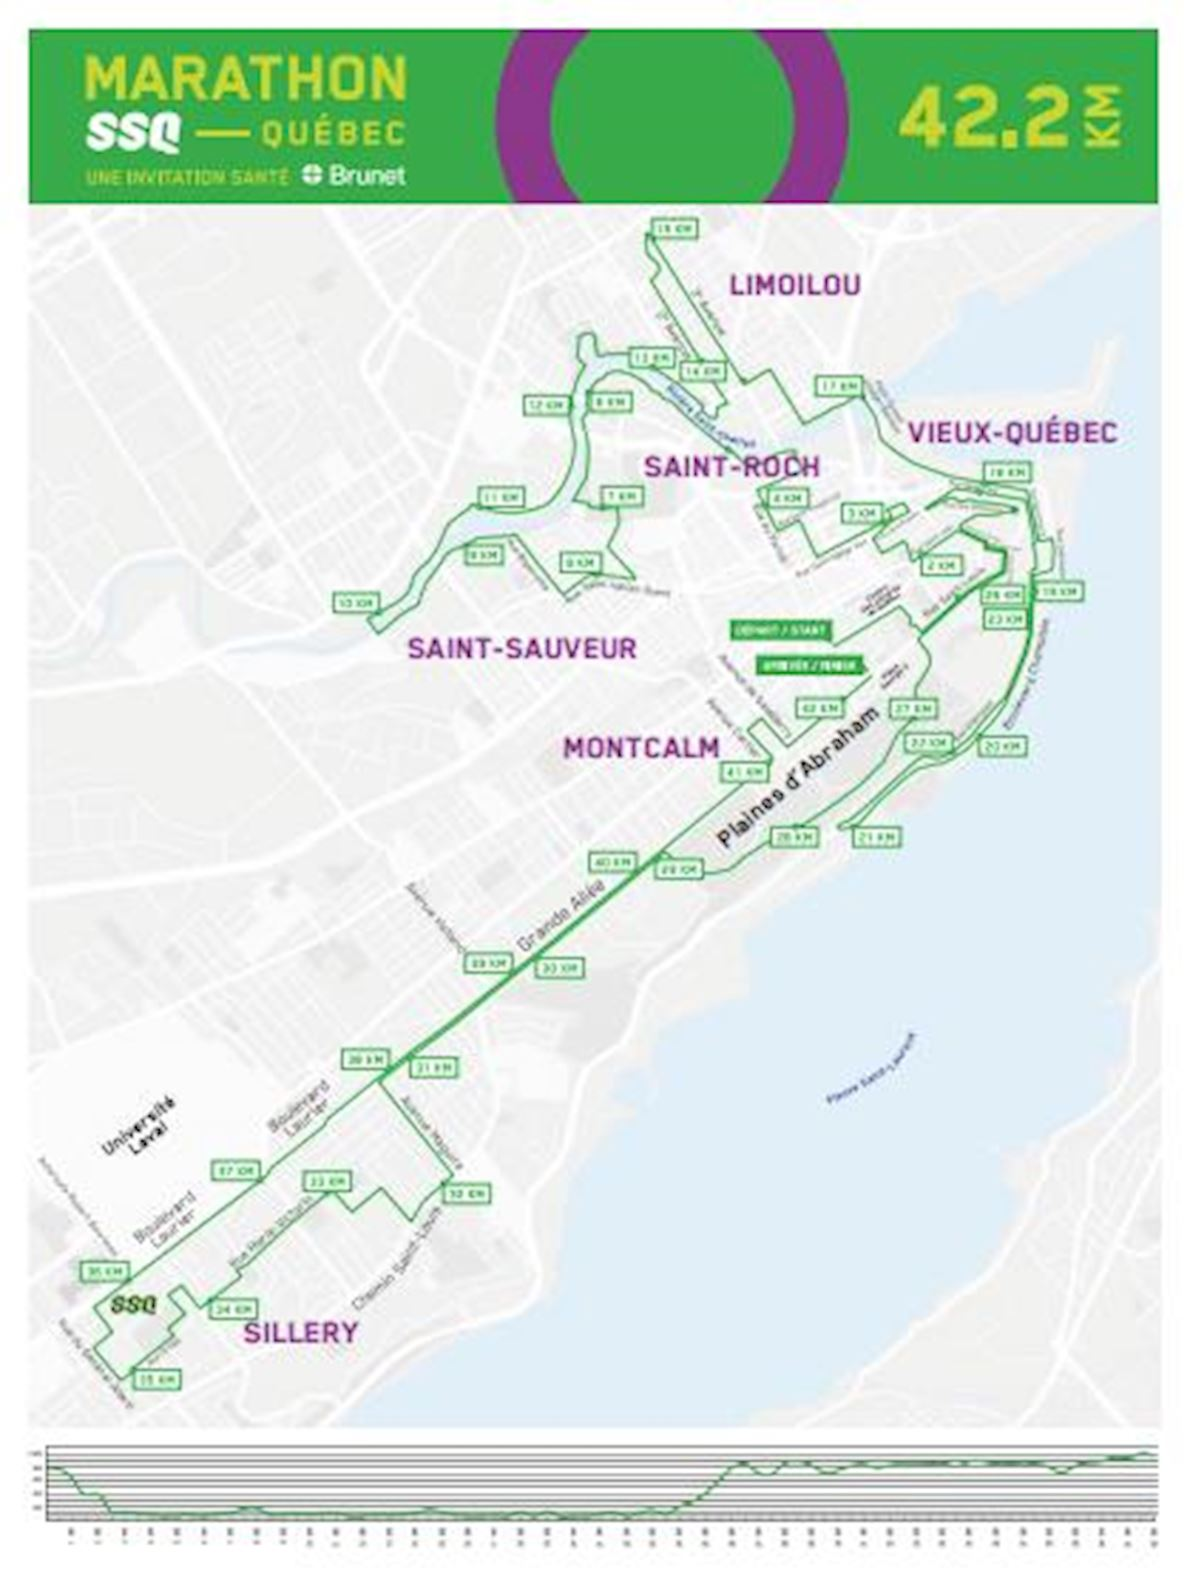 SSQ Quebec City Marathon 路线图